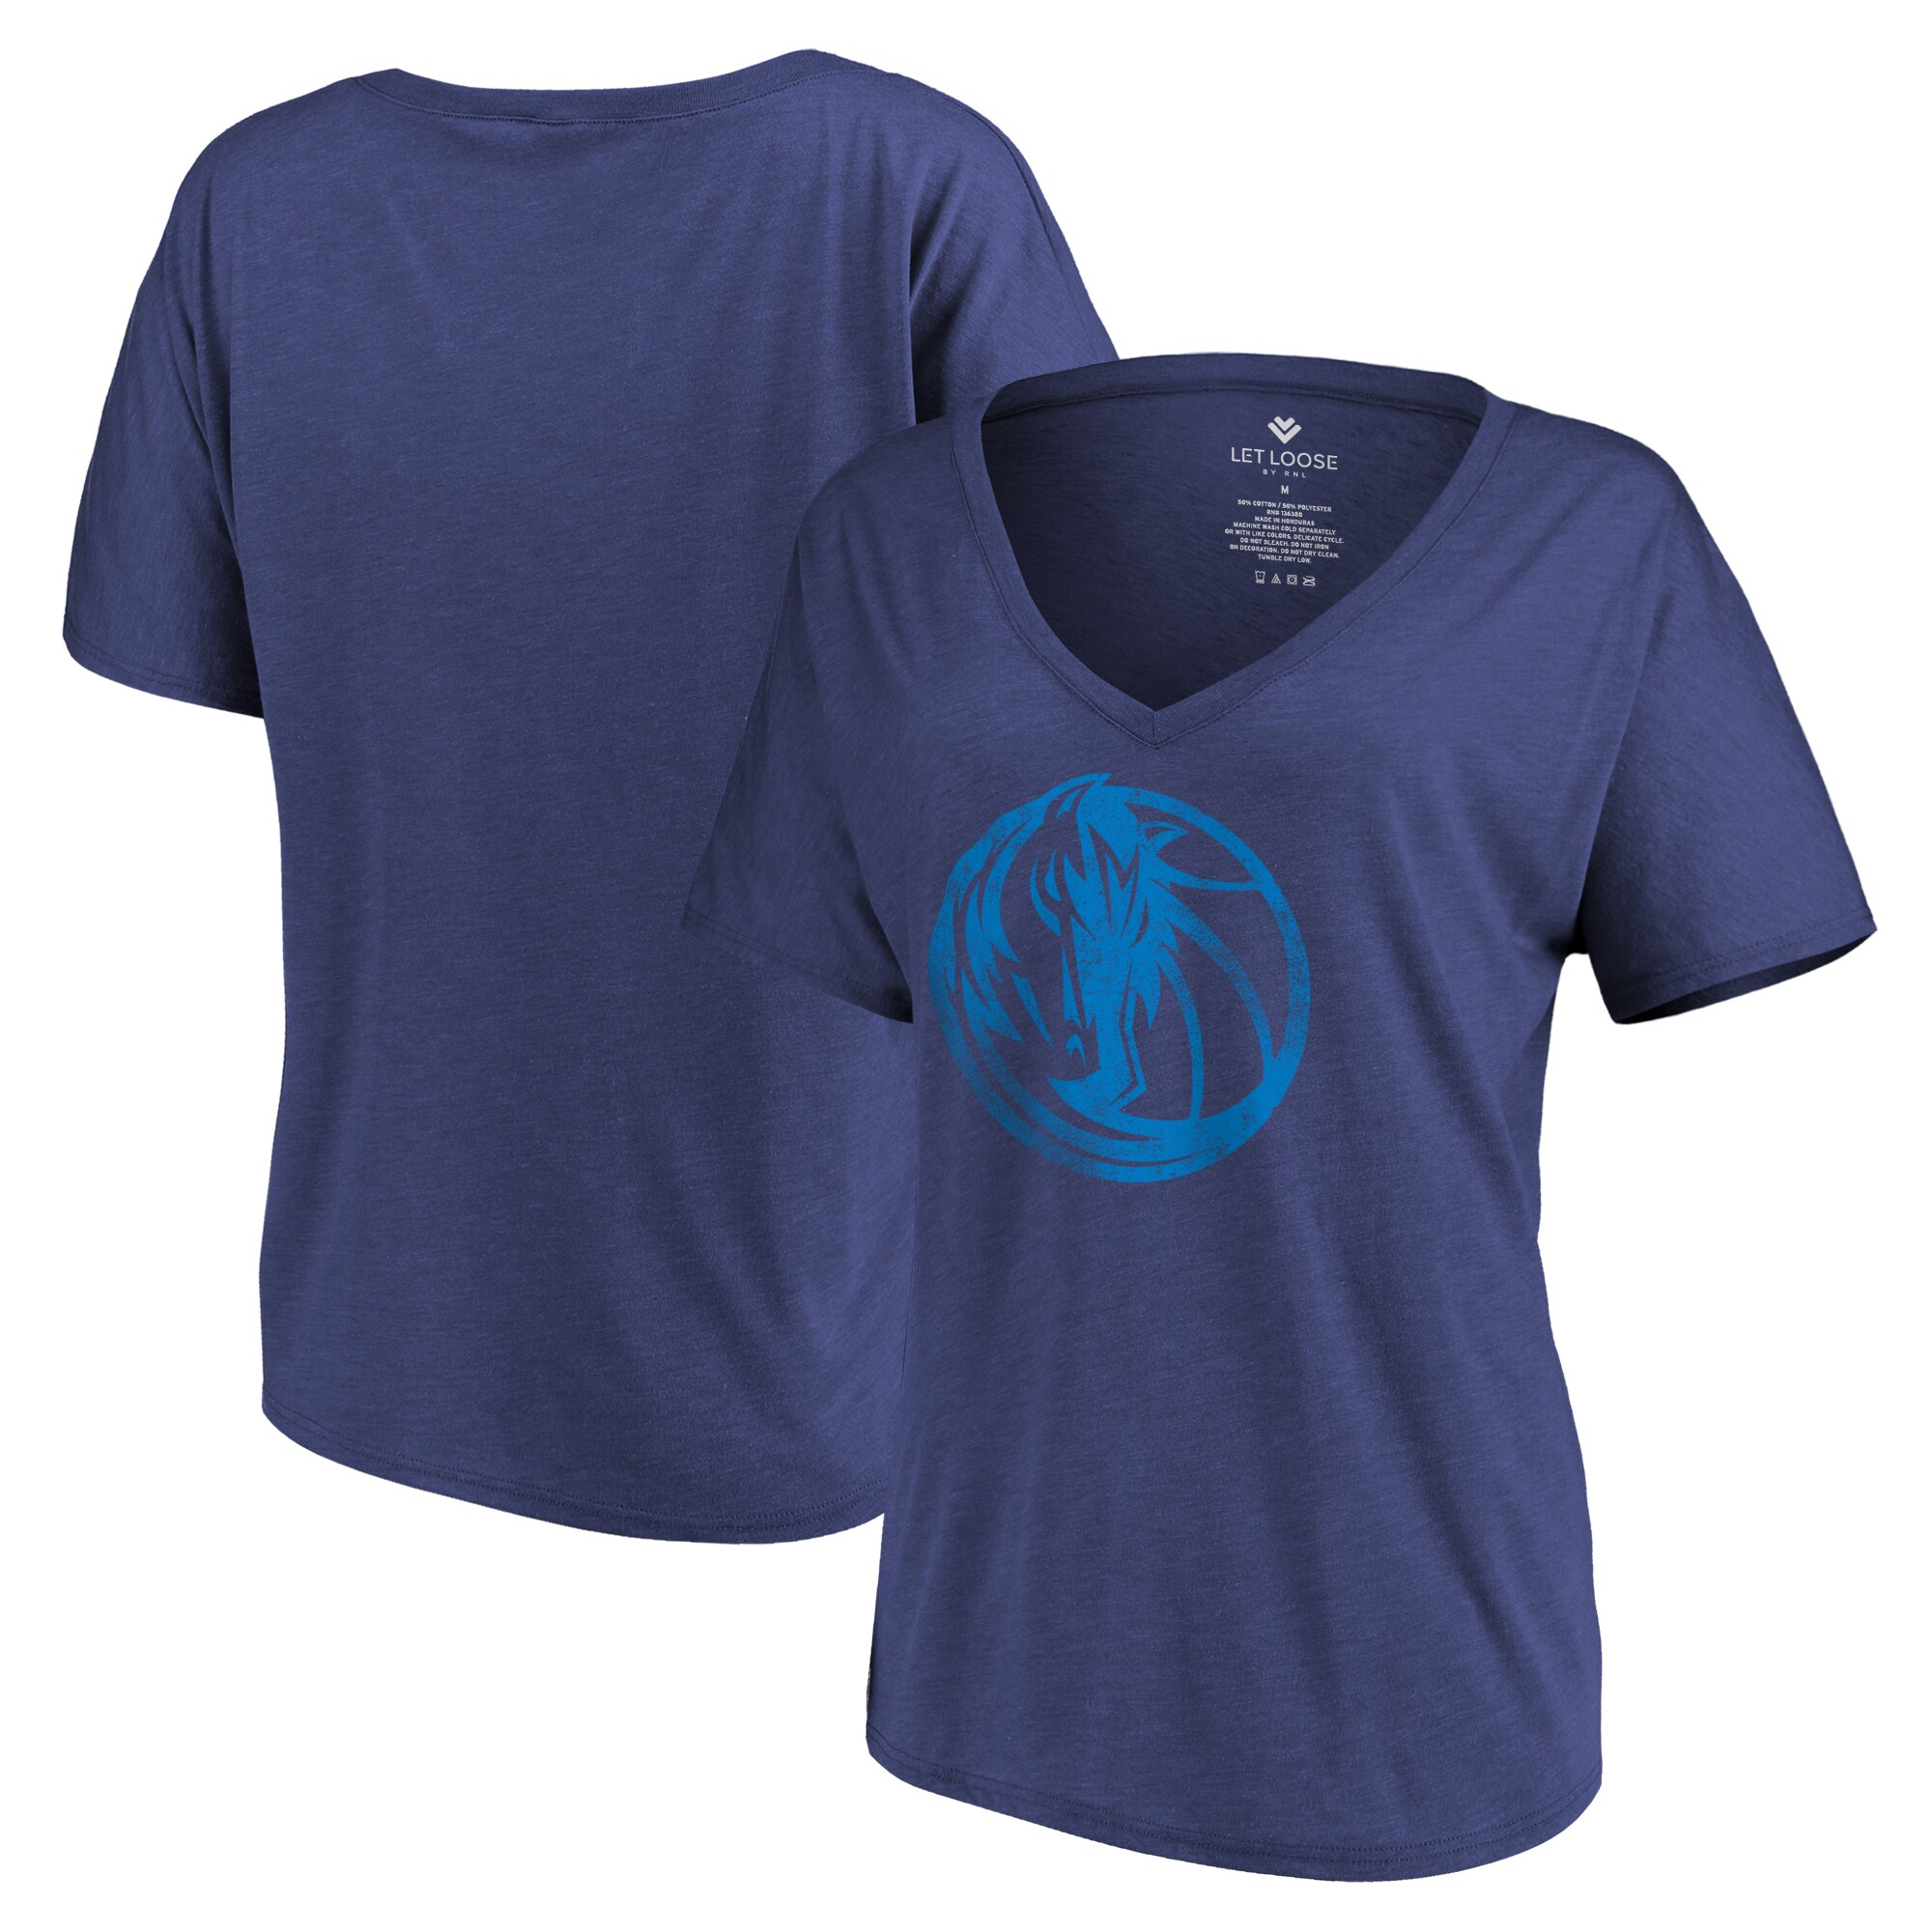 Dallas Mavericks Let Loose by RNL Women's Distressed Primary Logo V-Neck T-Shirt - Heathered Navy